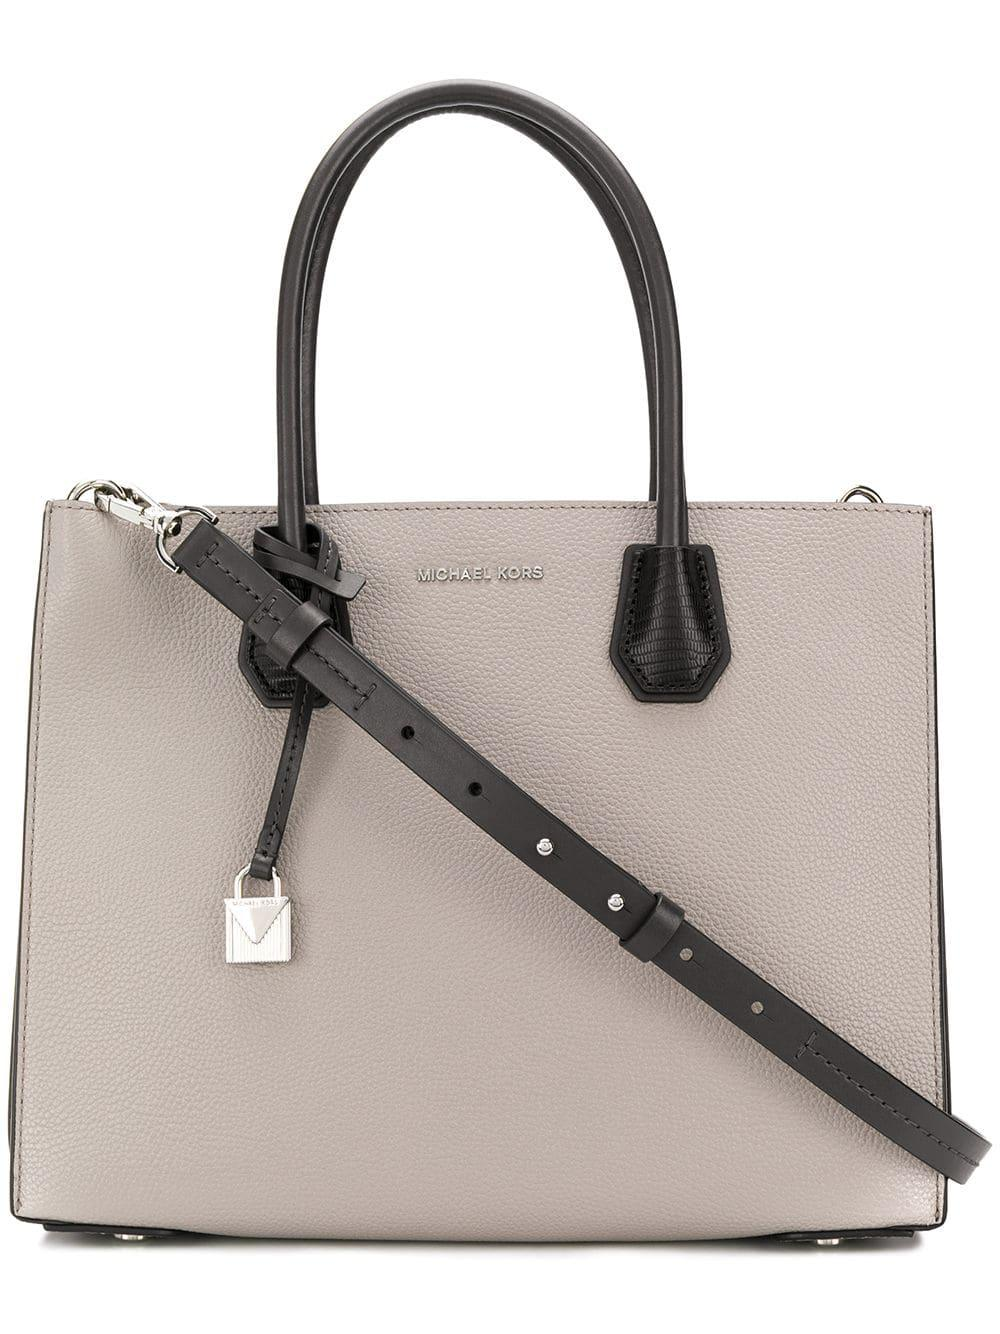 Lyst - Michael Michael Kors Mercer Leather Tote Bag in Gray - Save ... 06fa2581e